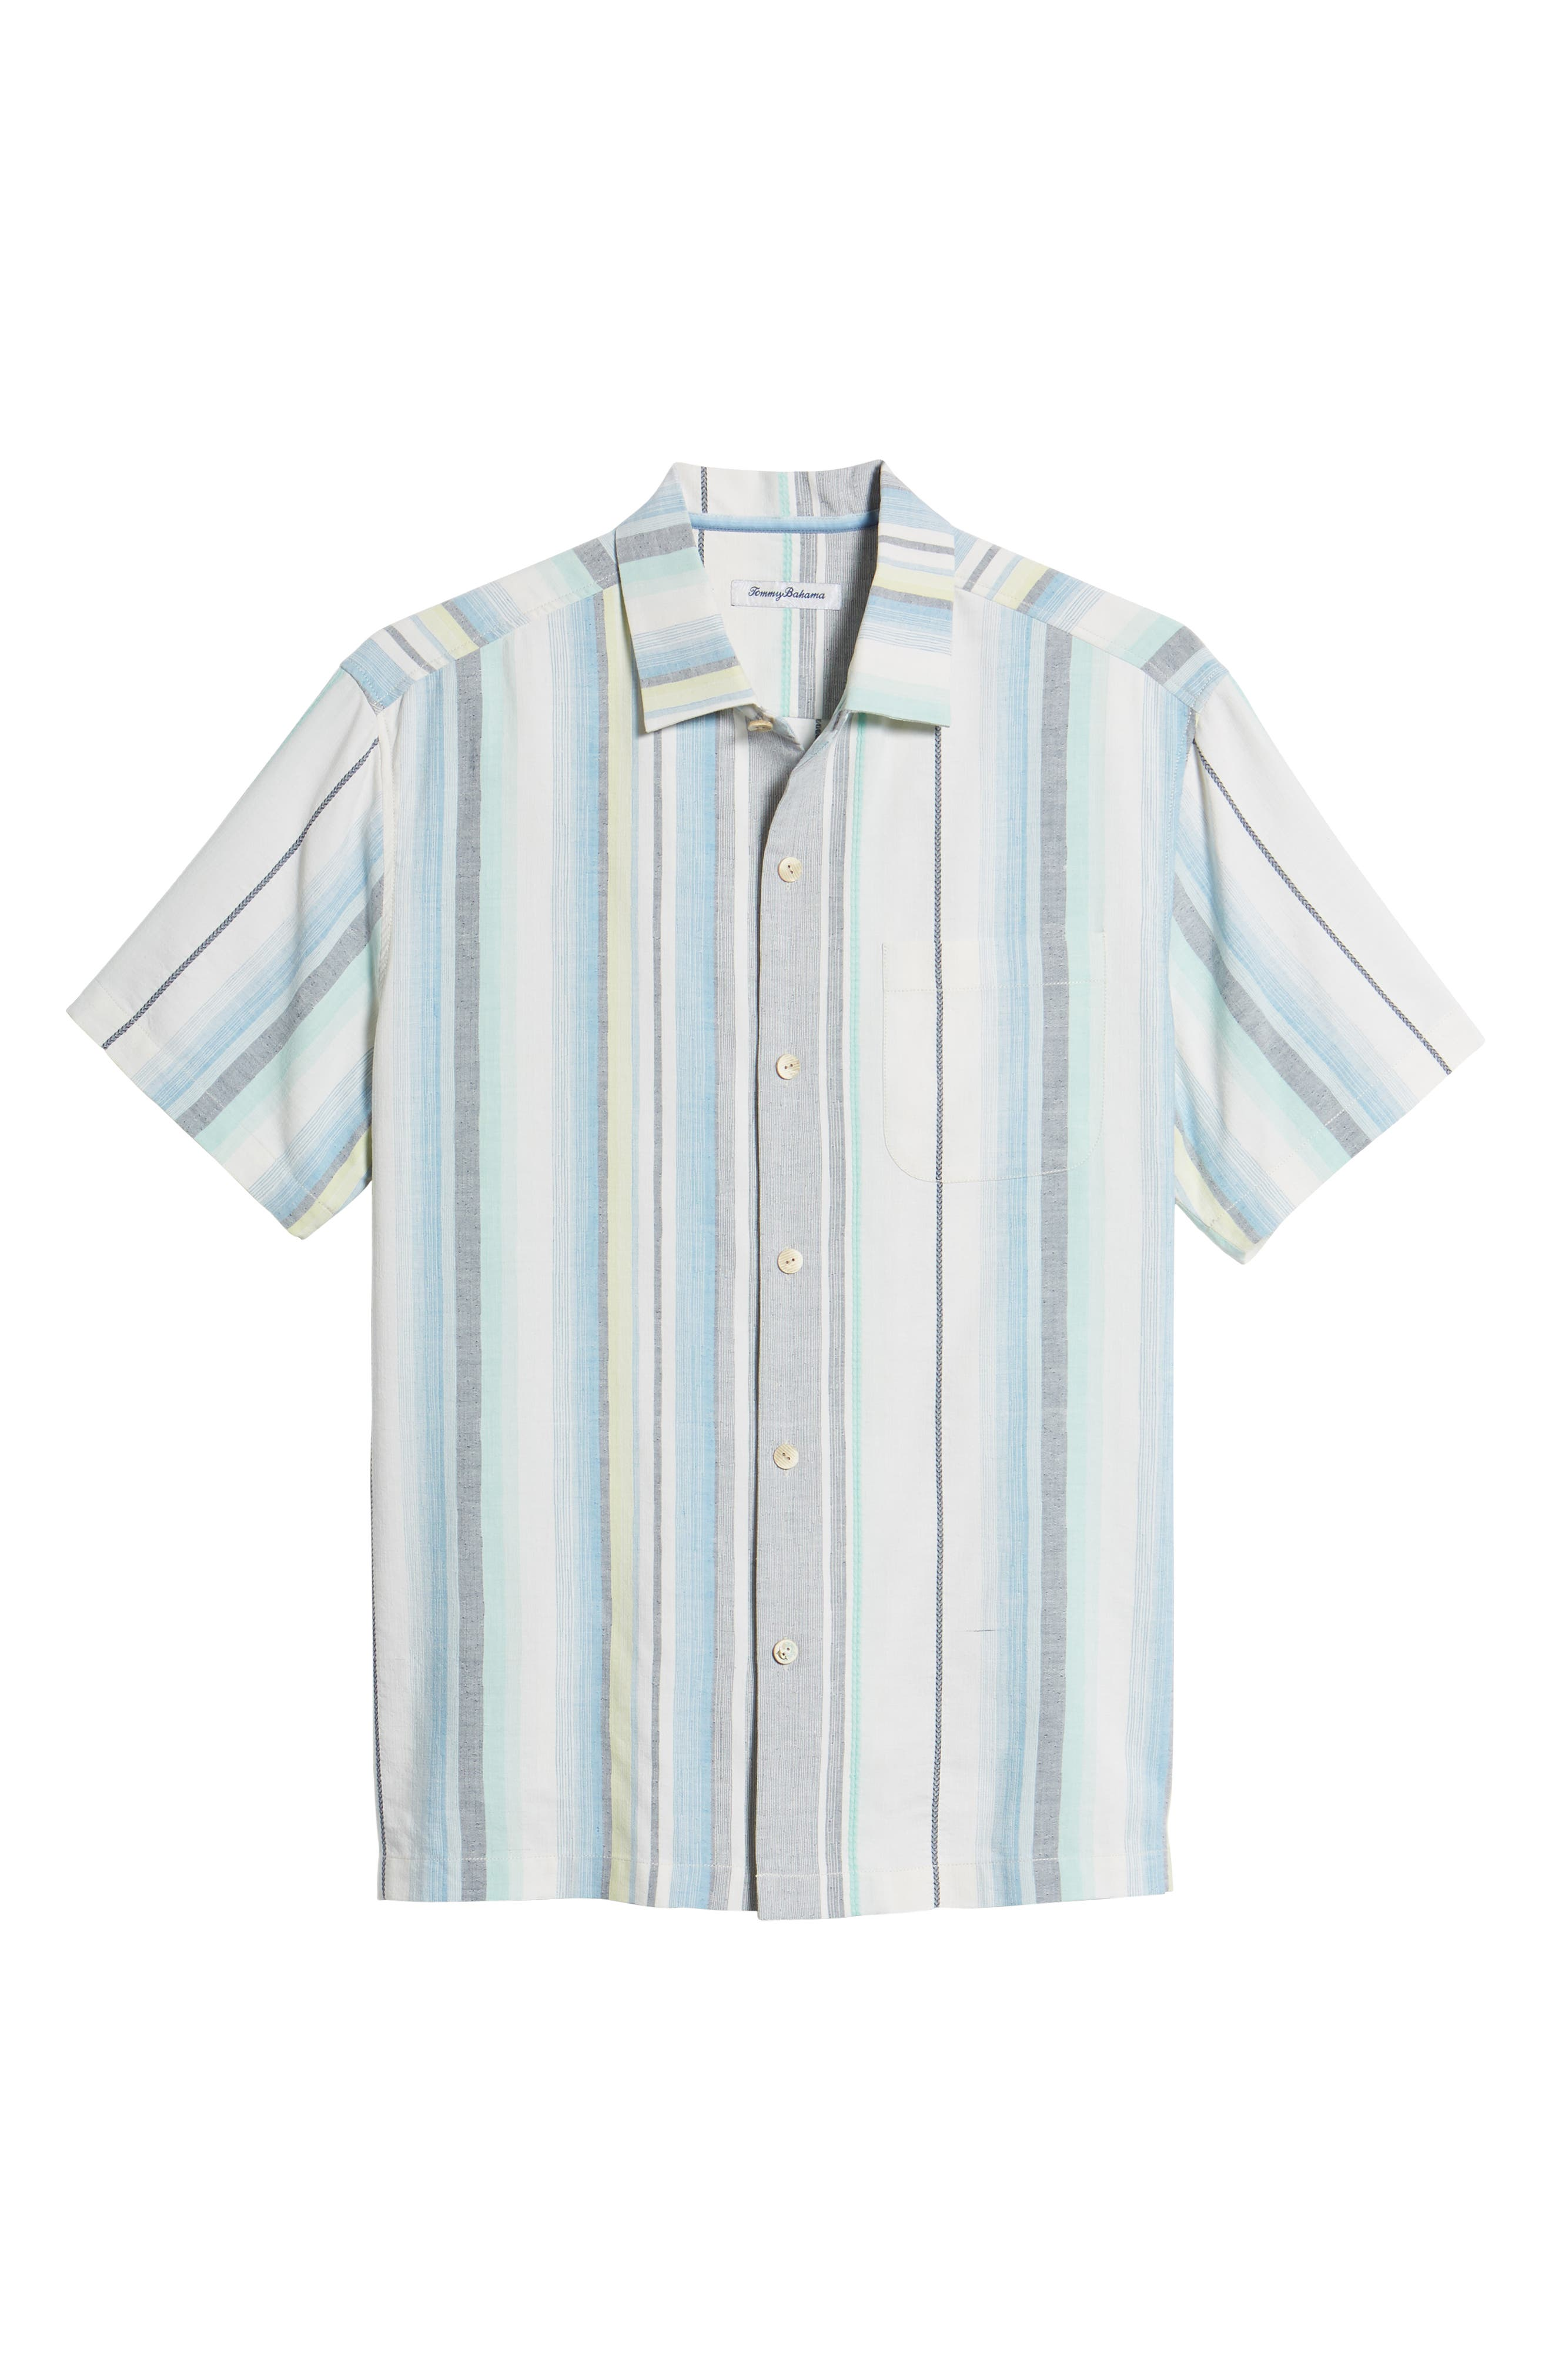 Posado Sands Silk Camp Shirt,                             Alternate thumbnail 6, color,                             BLUE ASTER